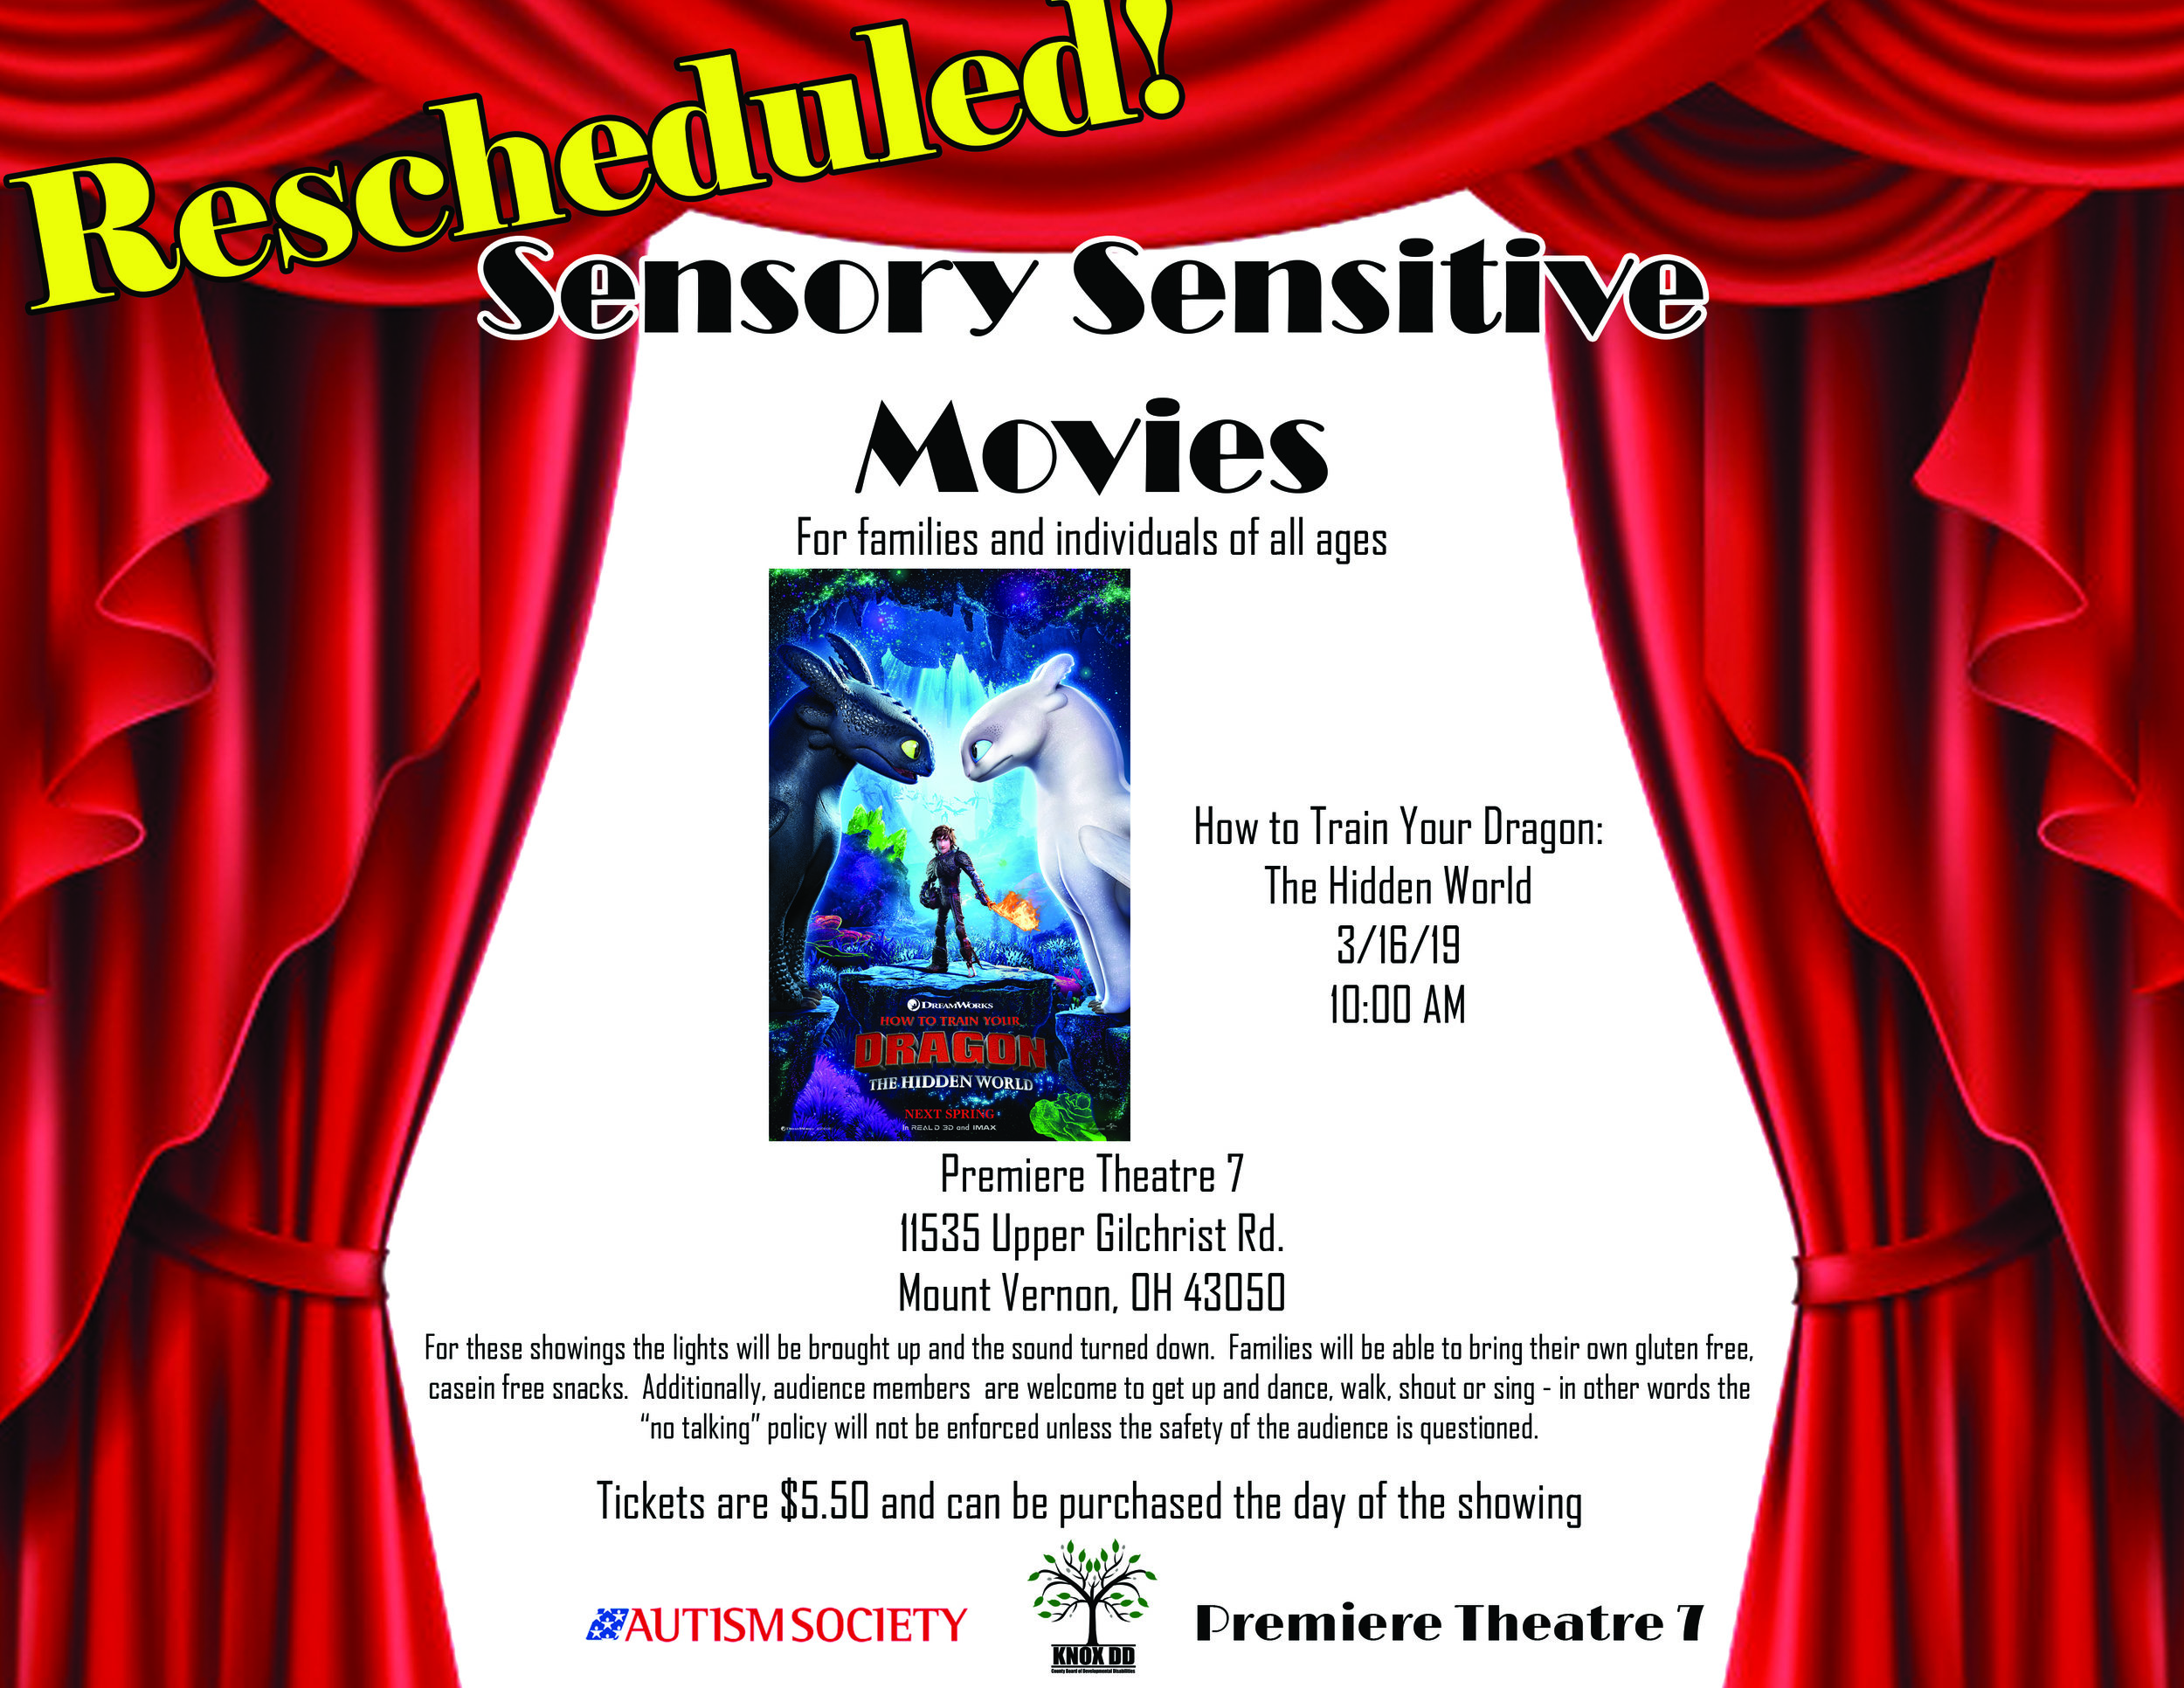 Train Dragon Sensory Sensitive Movies1.jpg